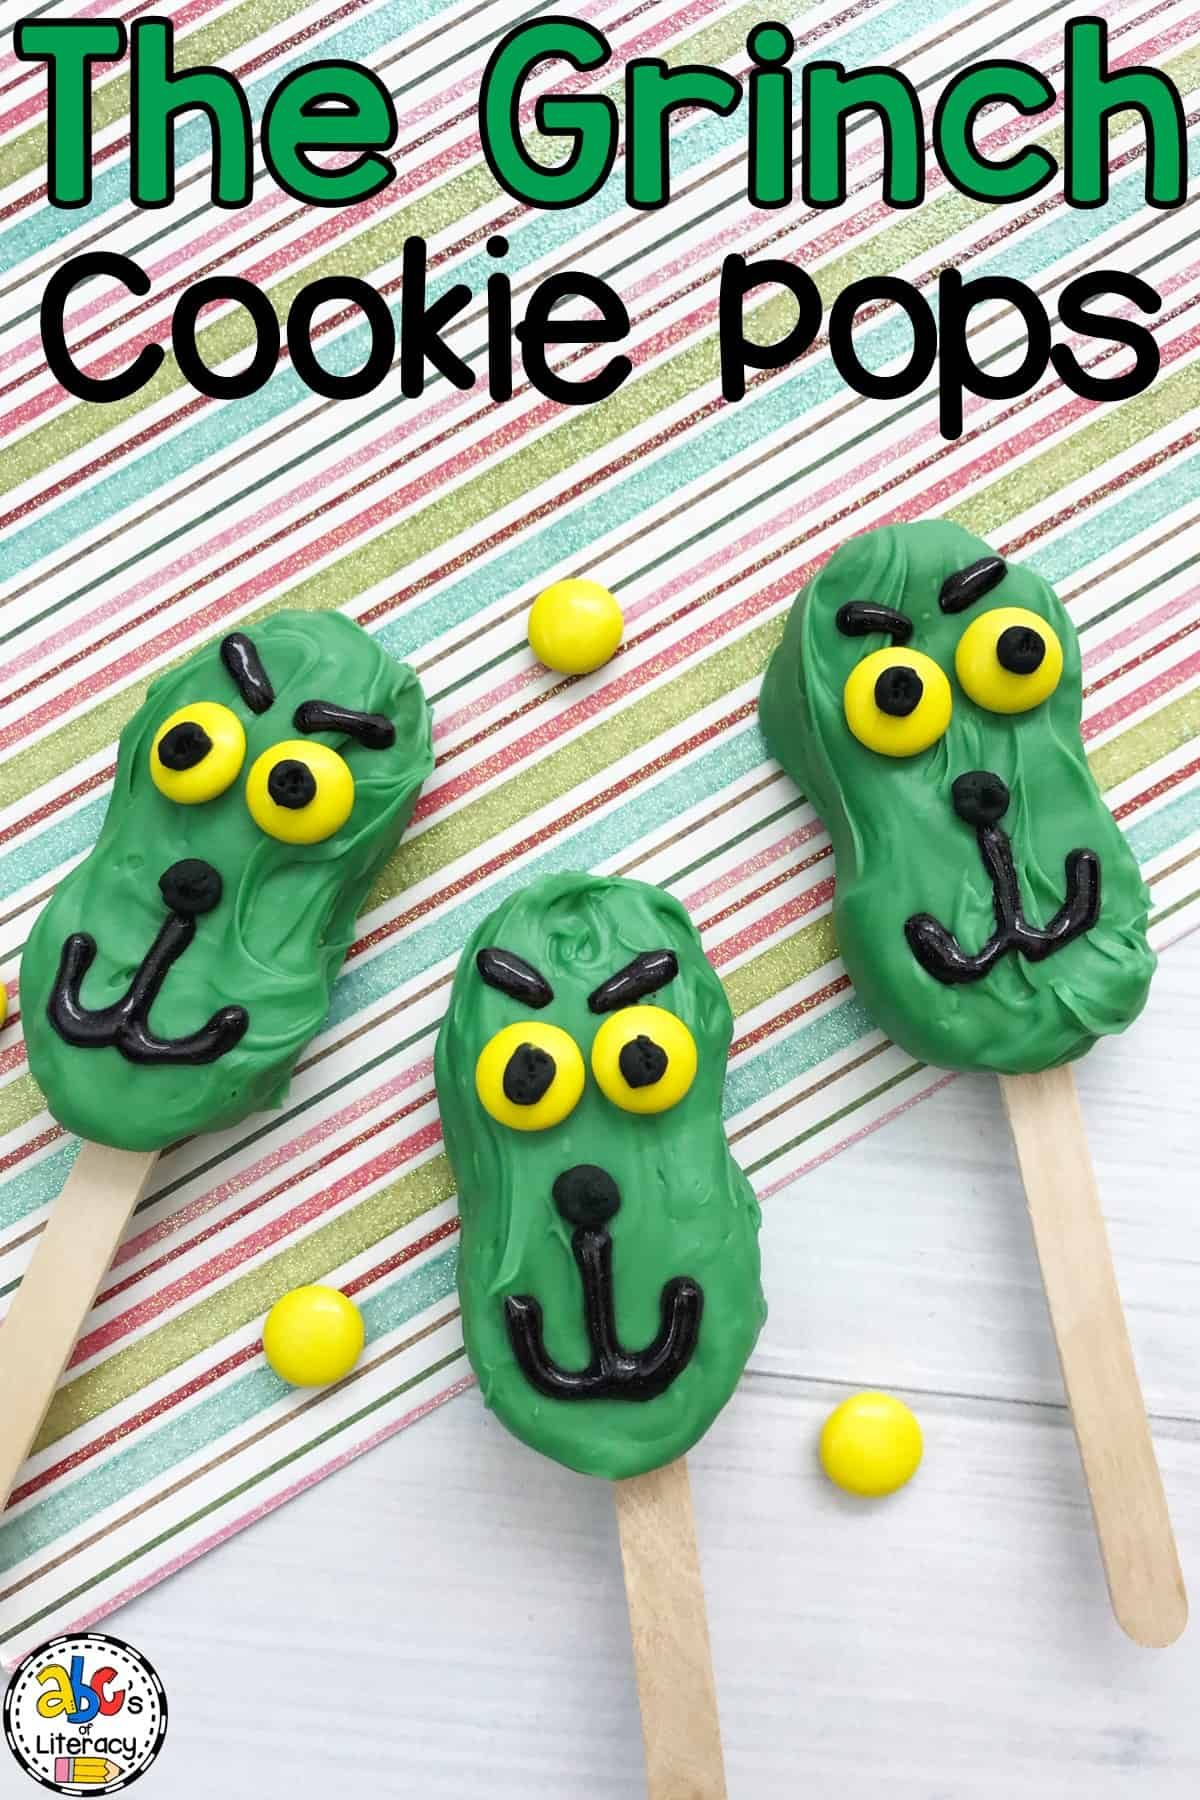 How To Make The Grinch Cookie Pops For Dr Seuss Day